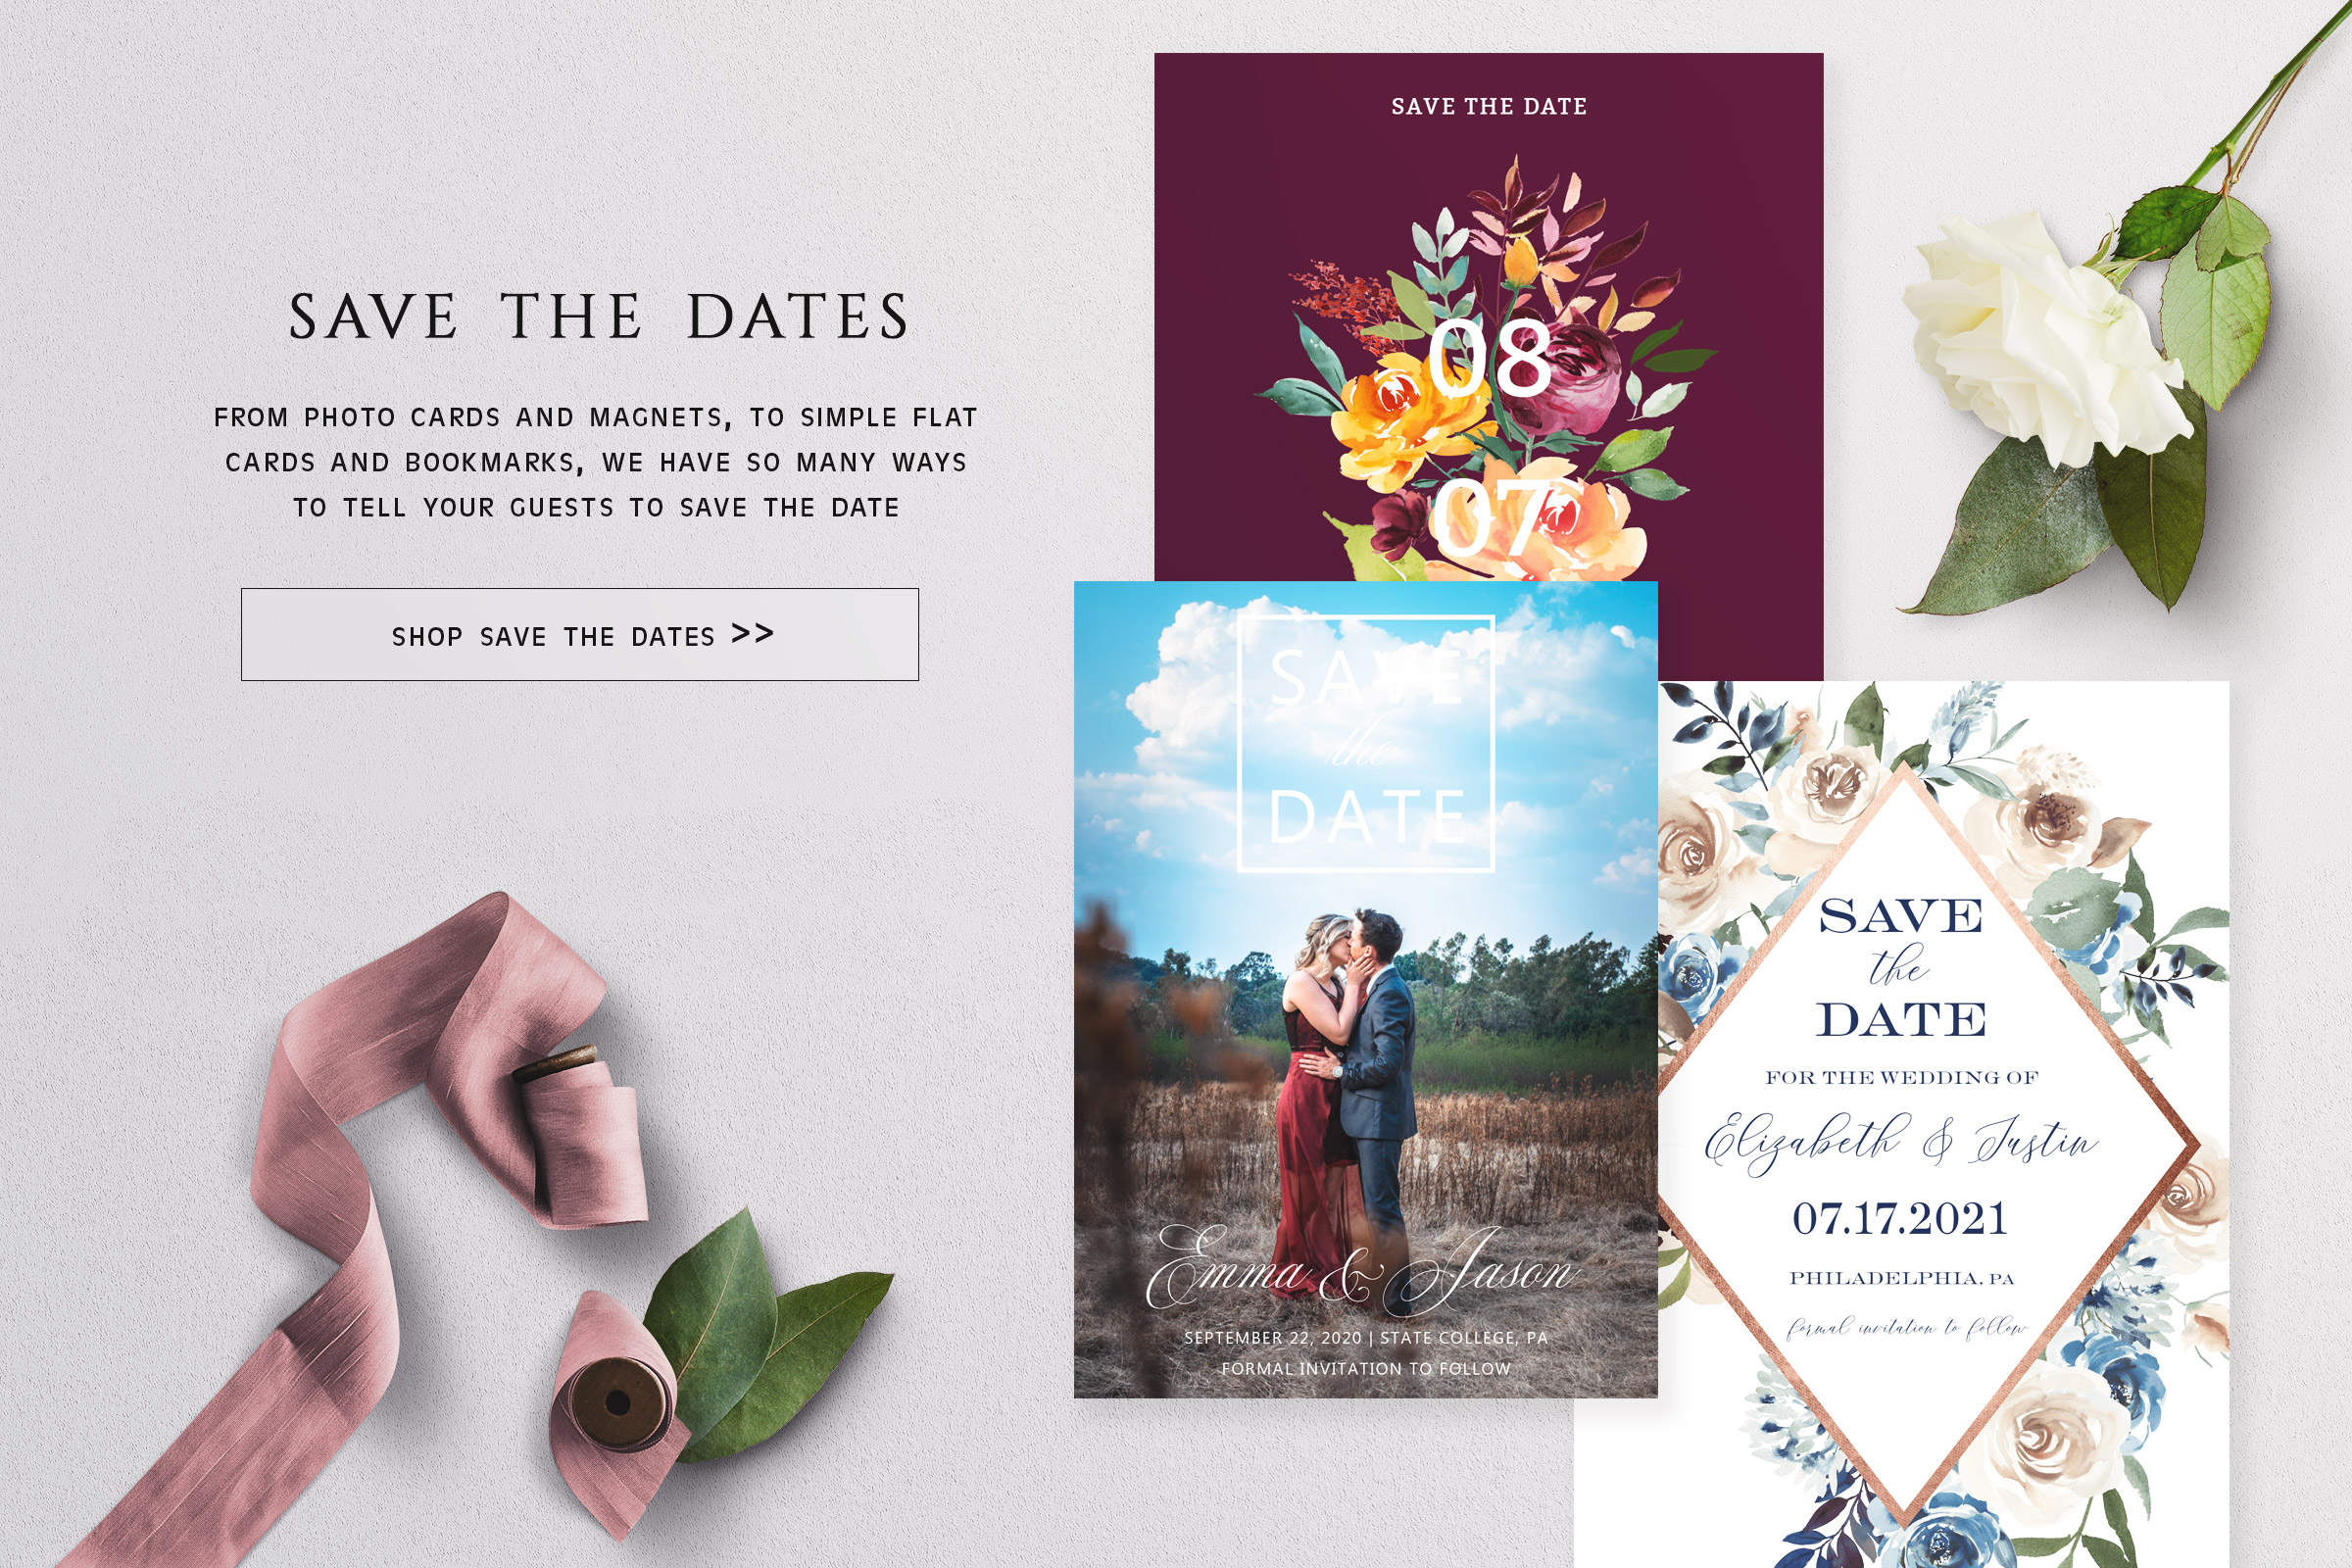 save-the-dates-new-1